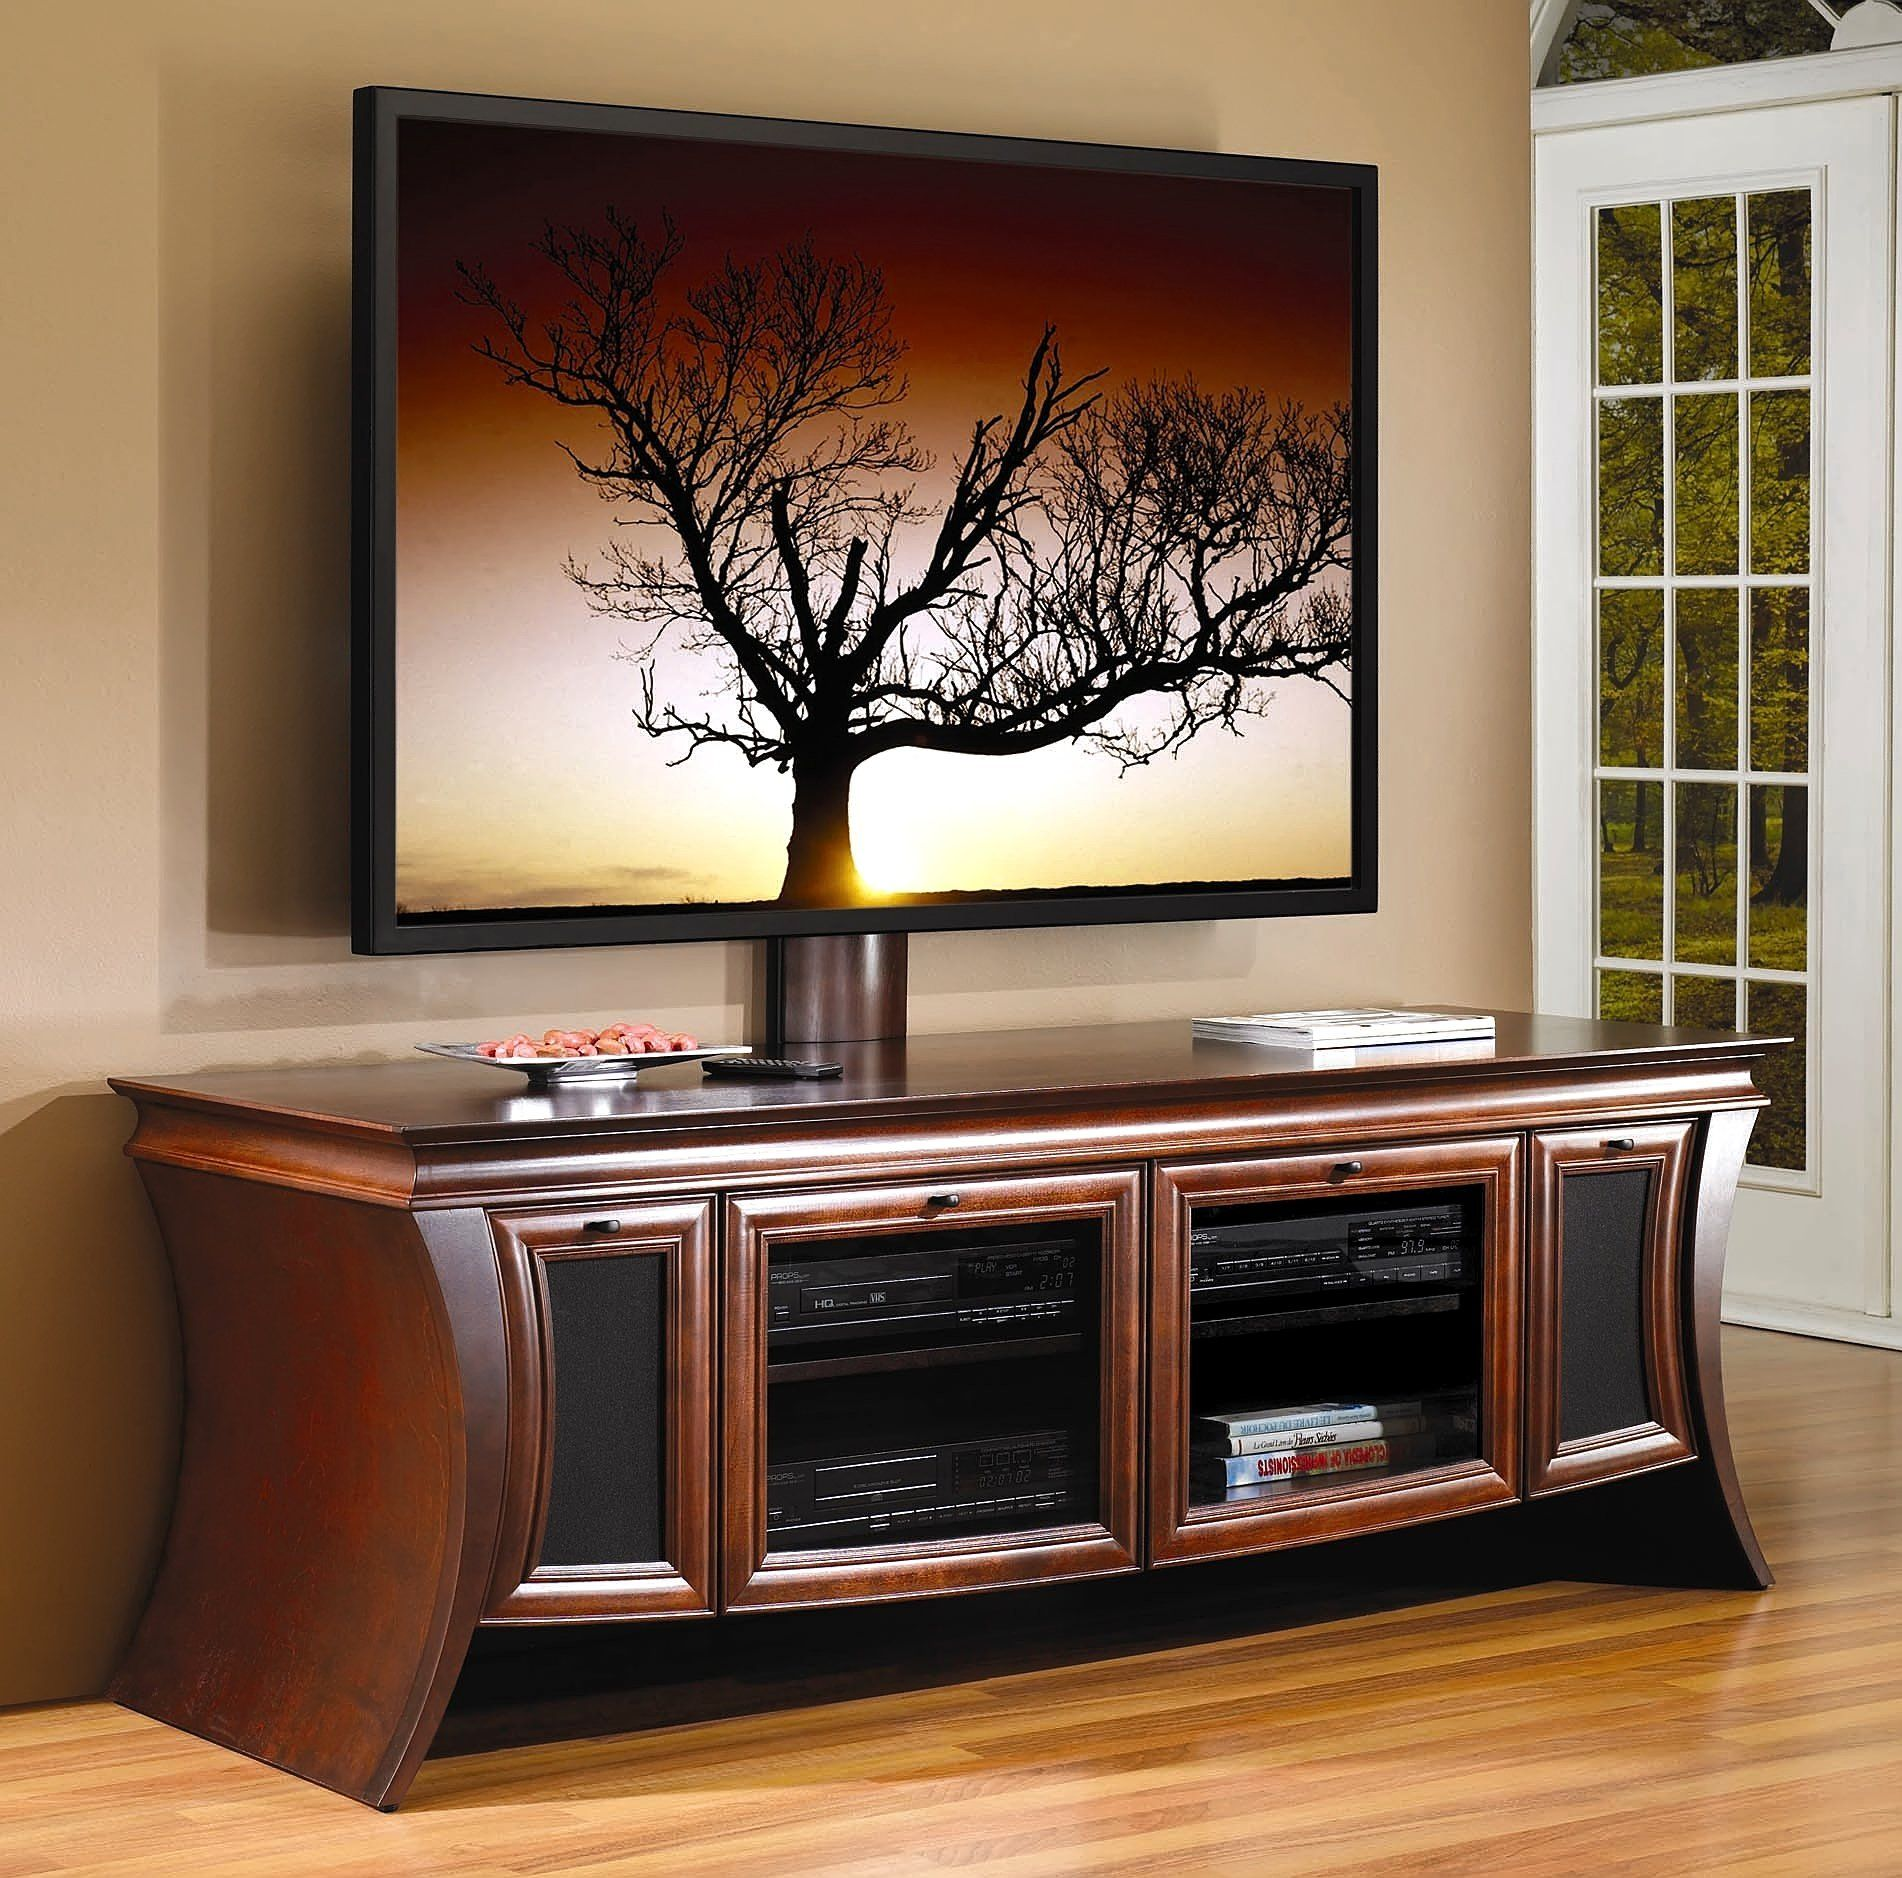 50 Inch Entertainment Center Part - 18: Wood Flat Screen Curved TV Stands | Photo Of Entertainment Center W Flat  Screen TV Panel